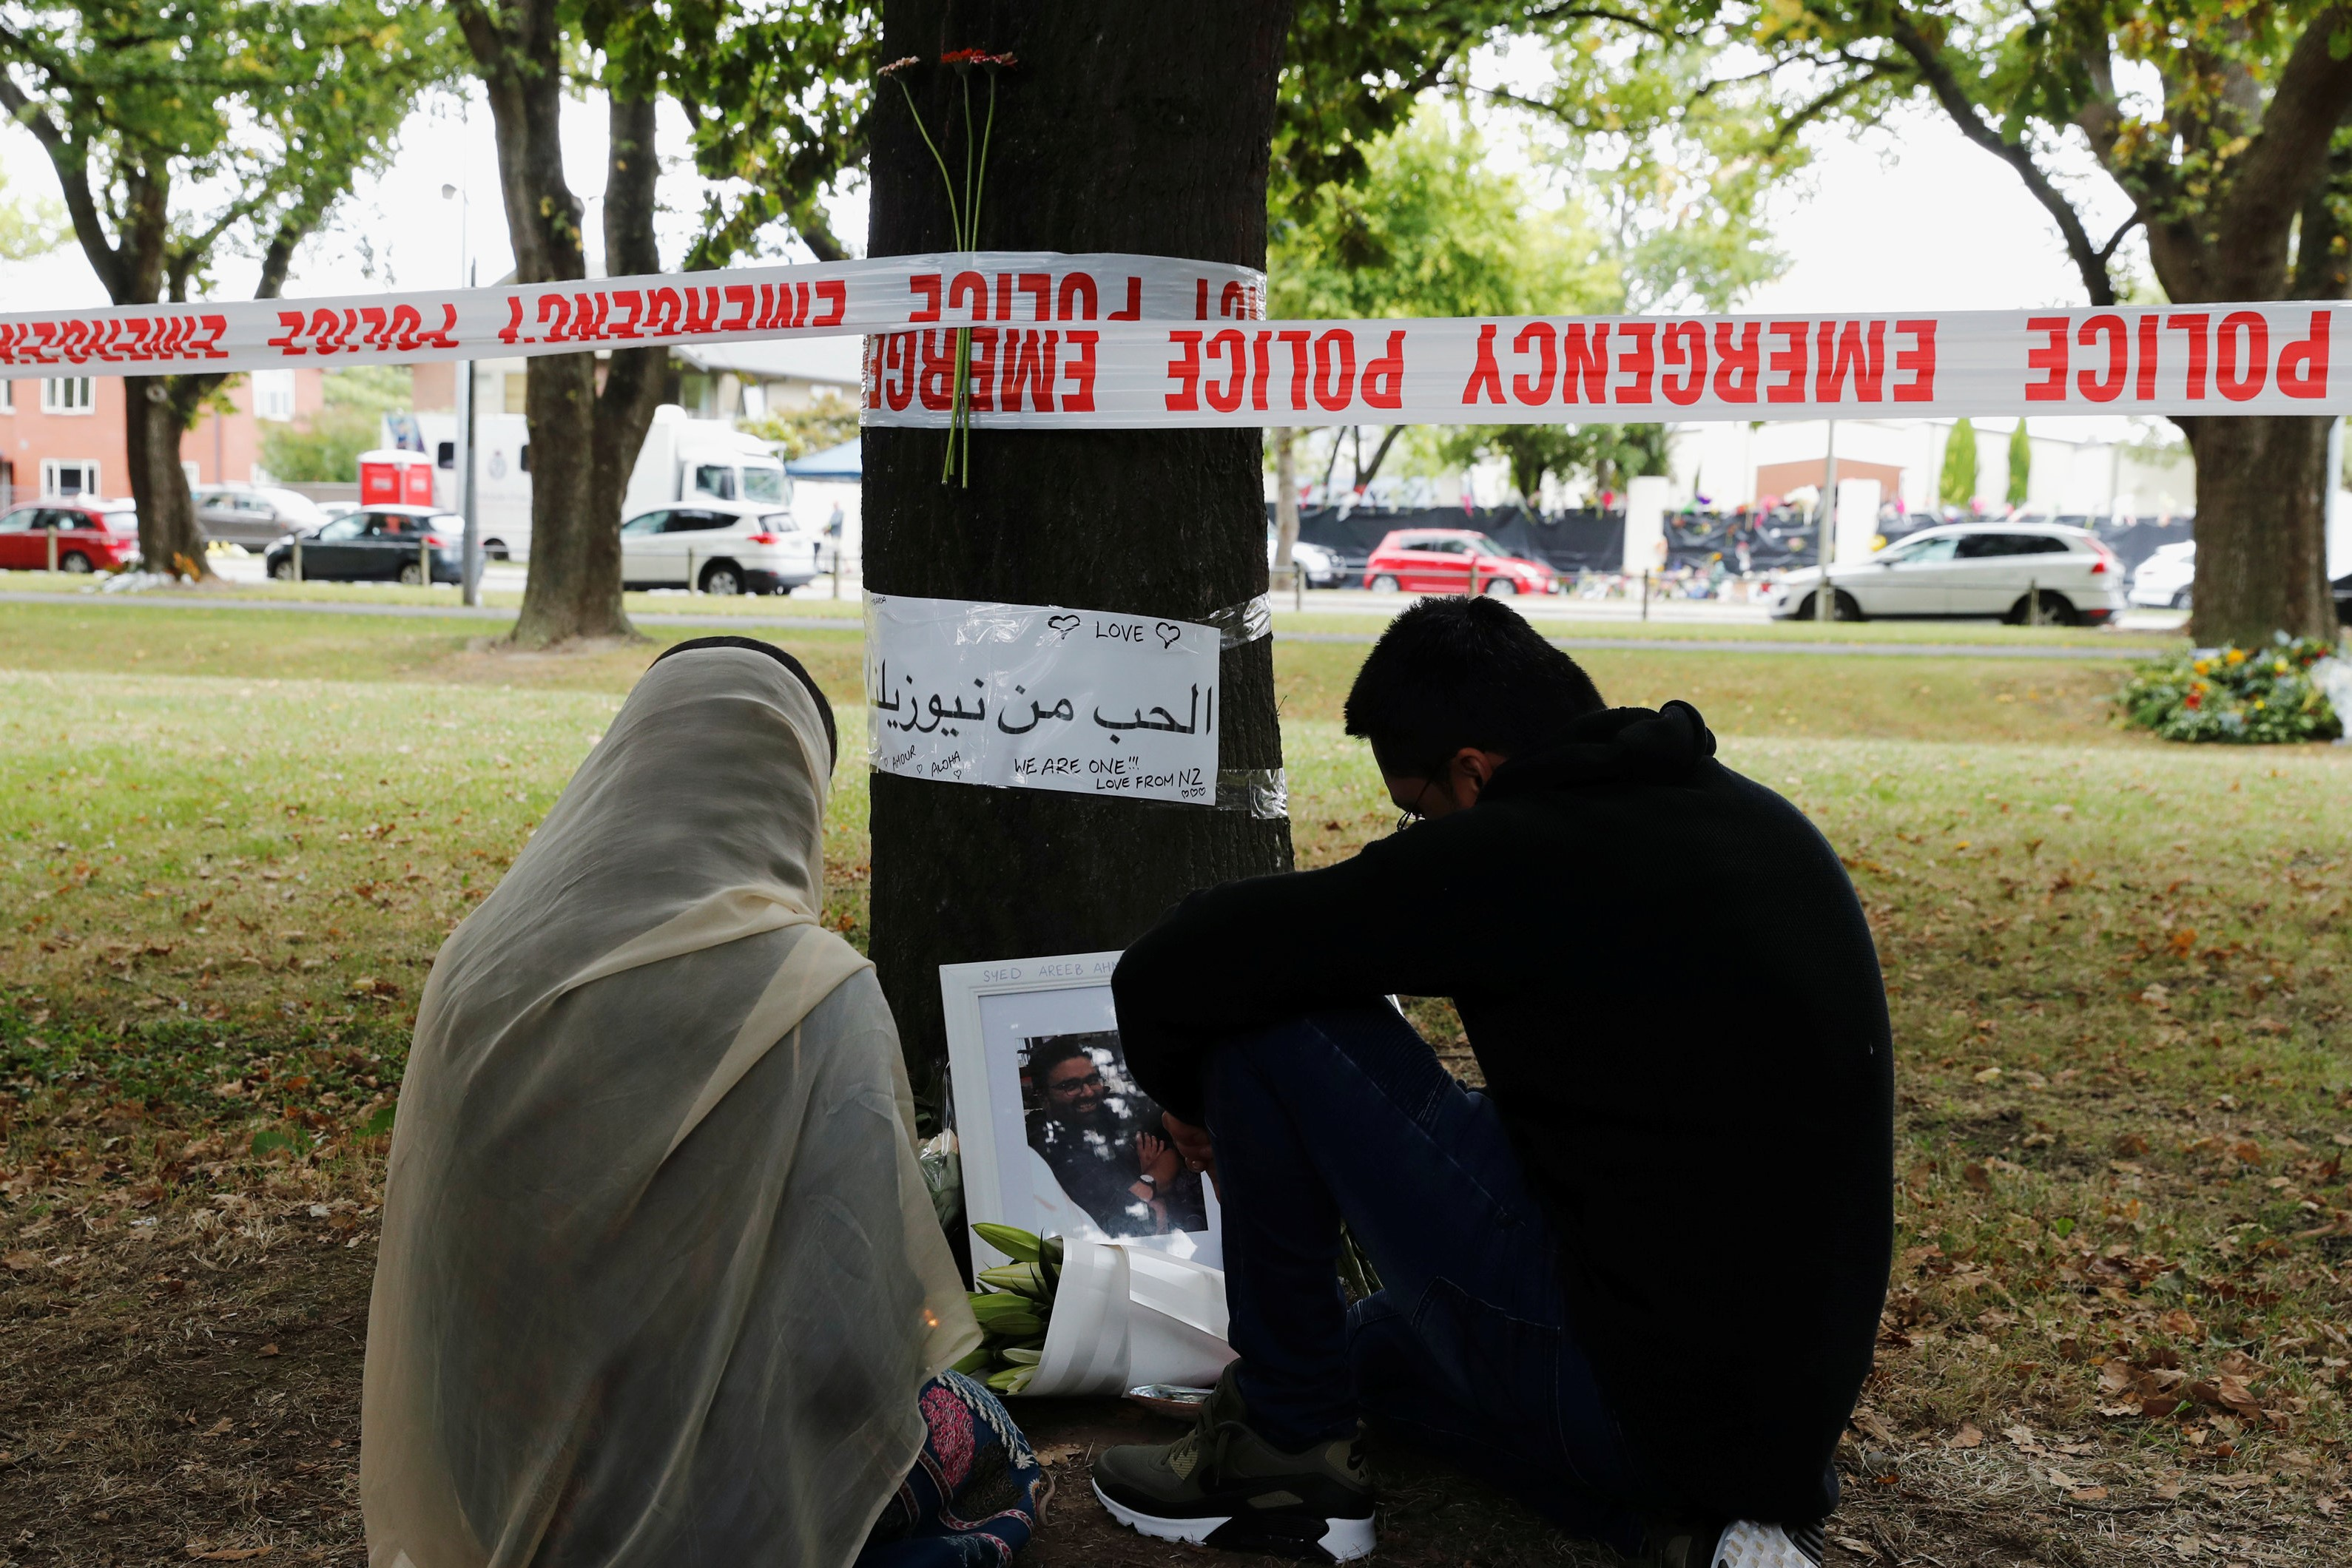 People visit at a memorial site for victims of Friday's shooting, in front of the Masjid Al Noor mosque in Christchurch, New Zealand on 18 March (Reuters)